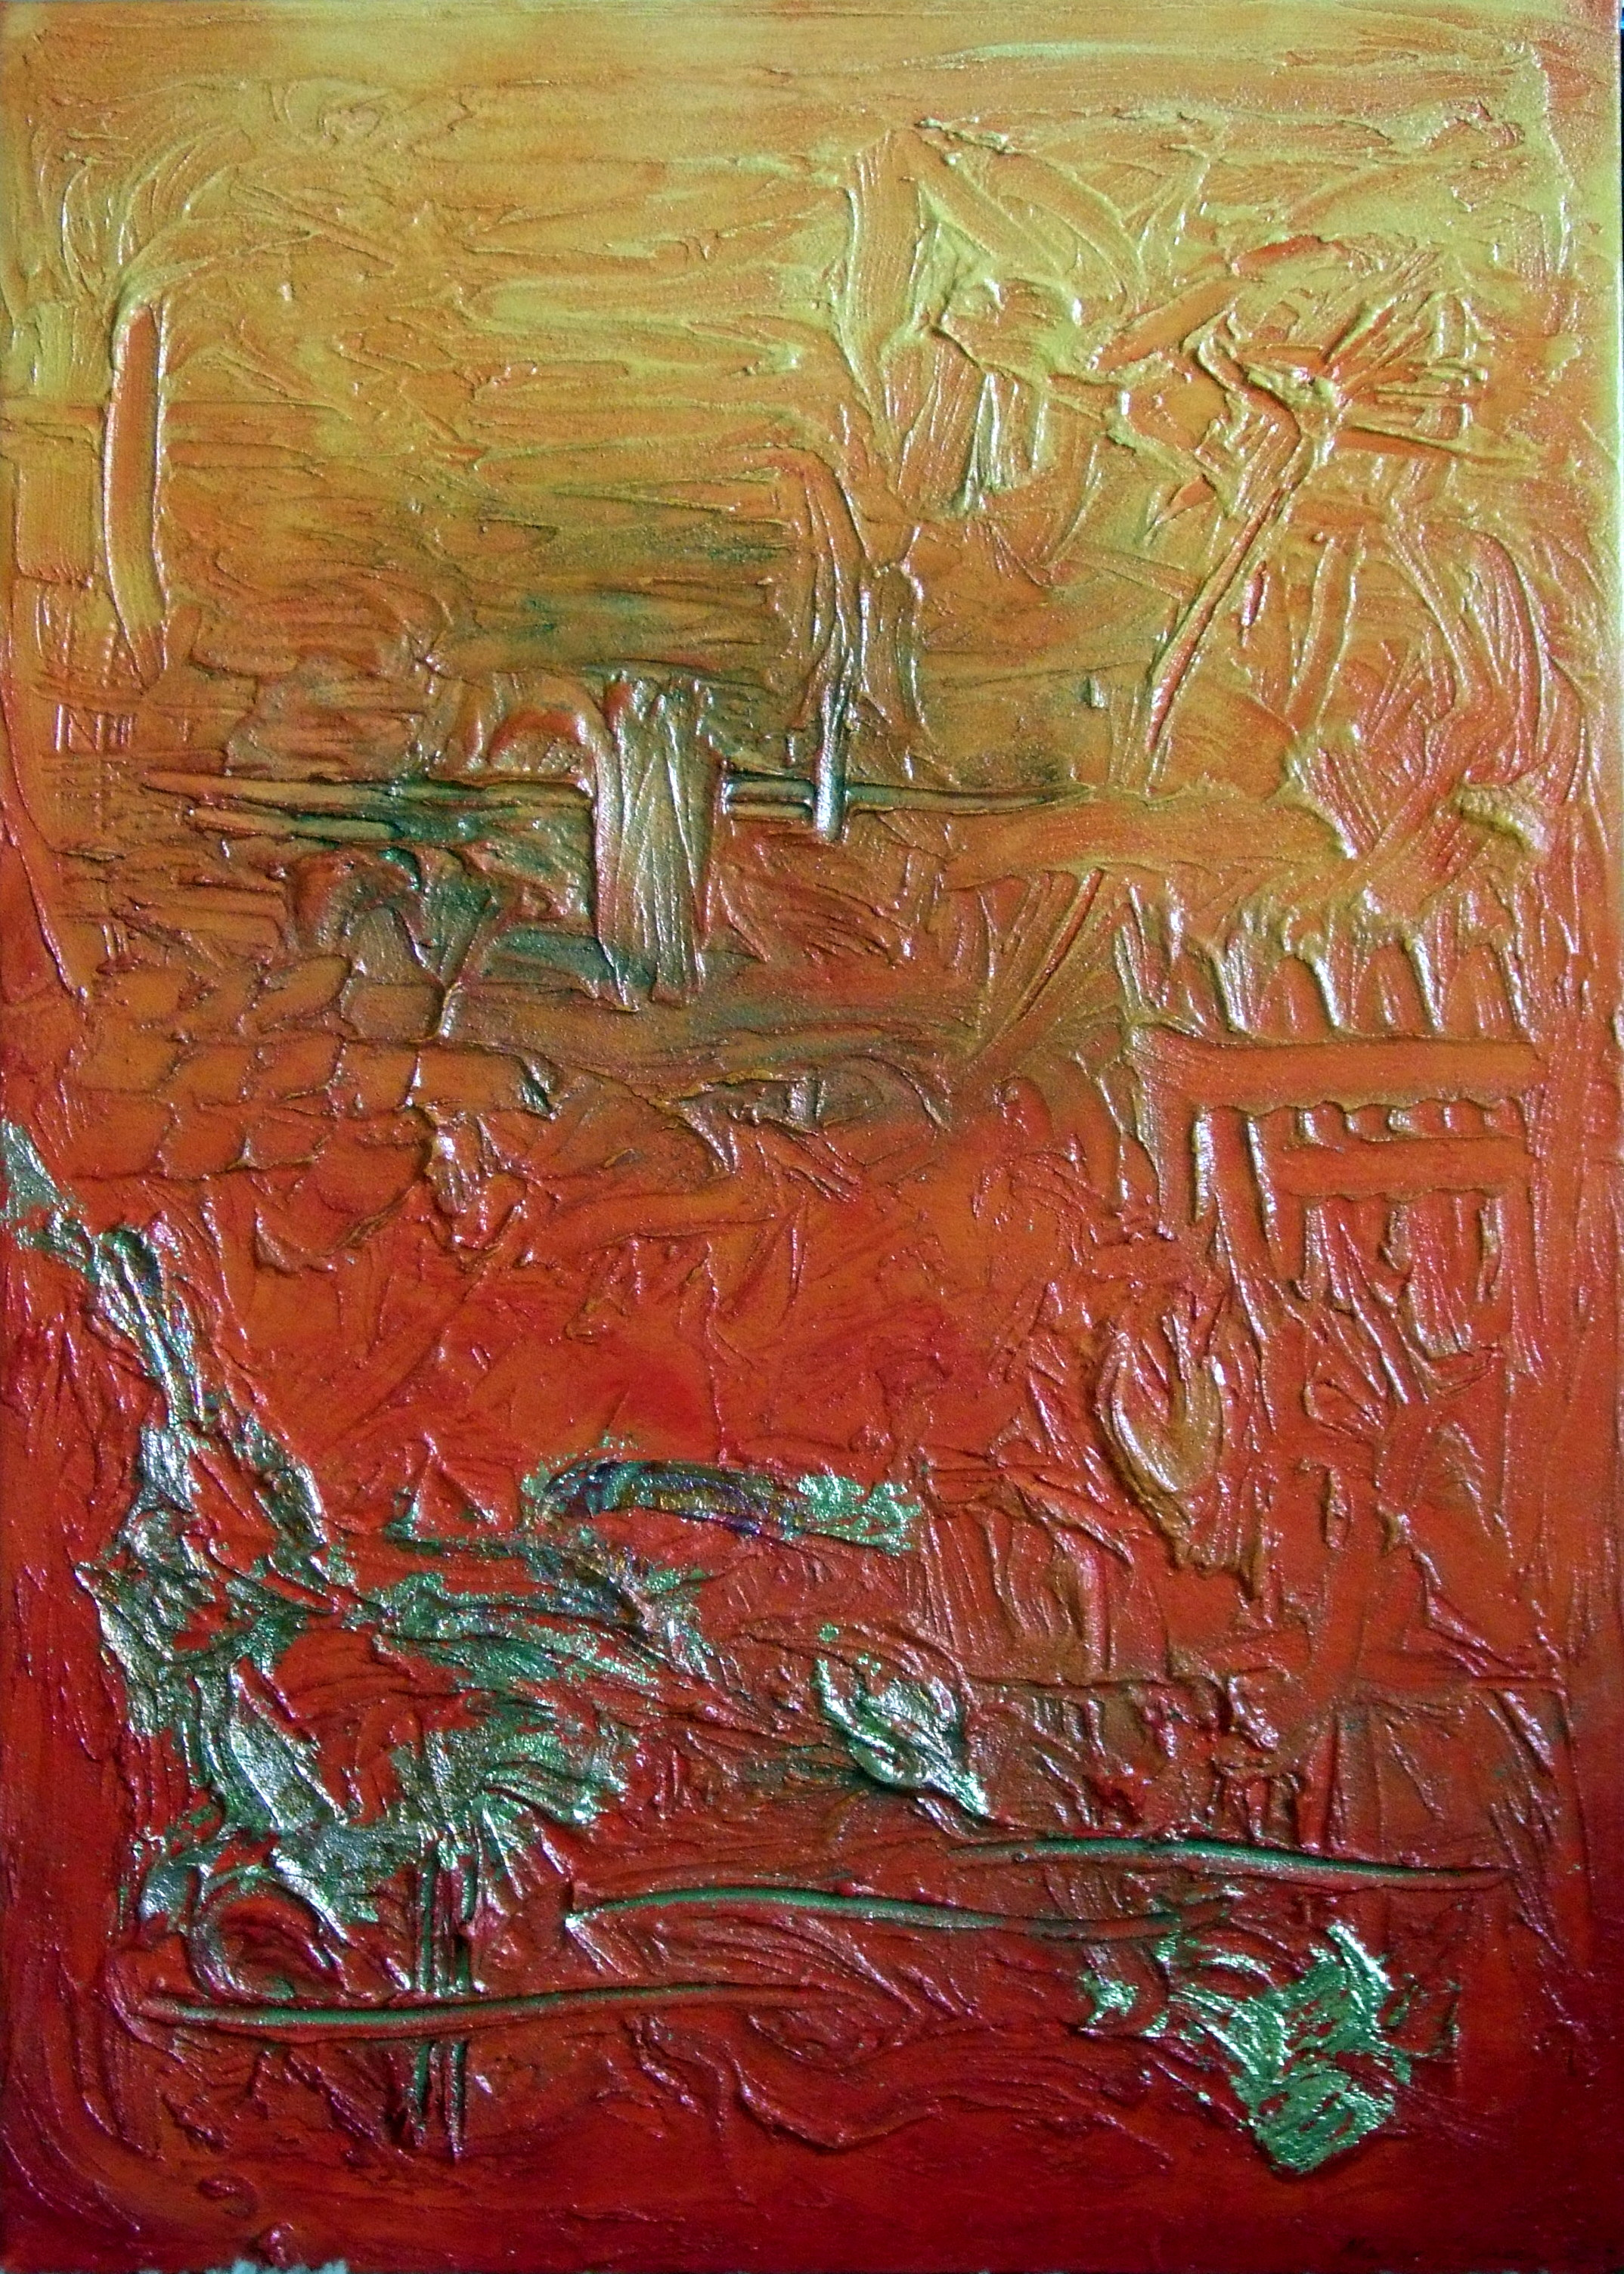 Acrylic painting archives painting texture for Texture painting ideas canvas